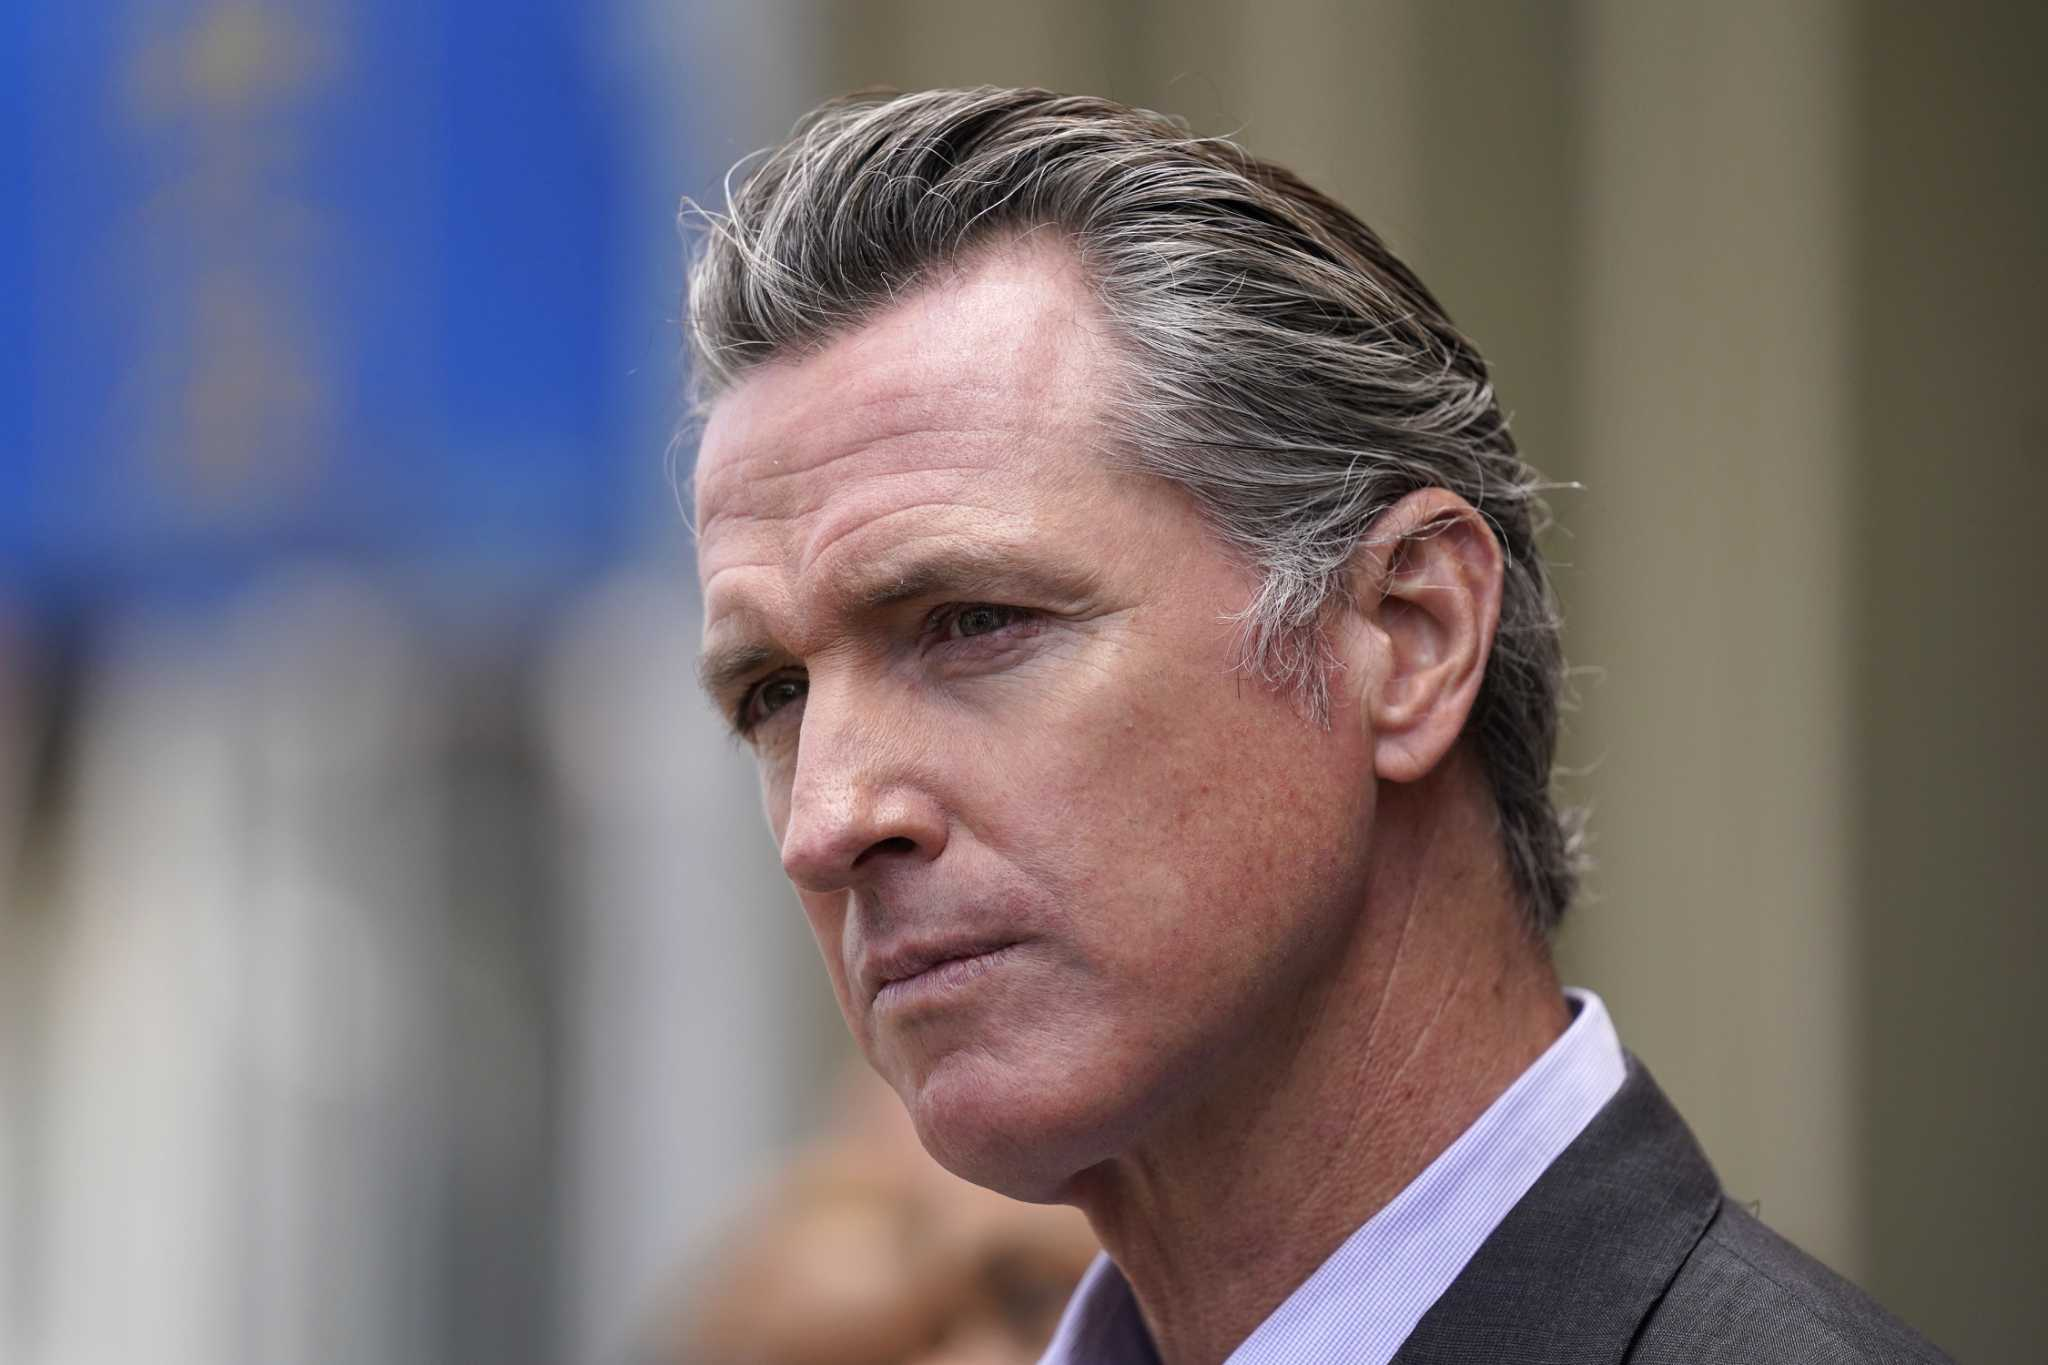 Republicans rage after Dems move up Newsom recall timeline